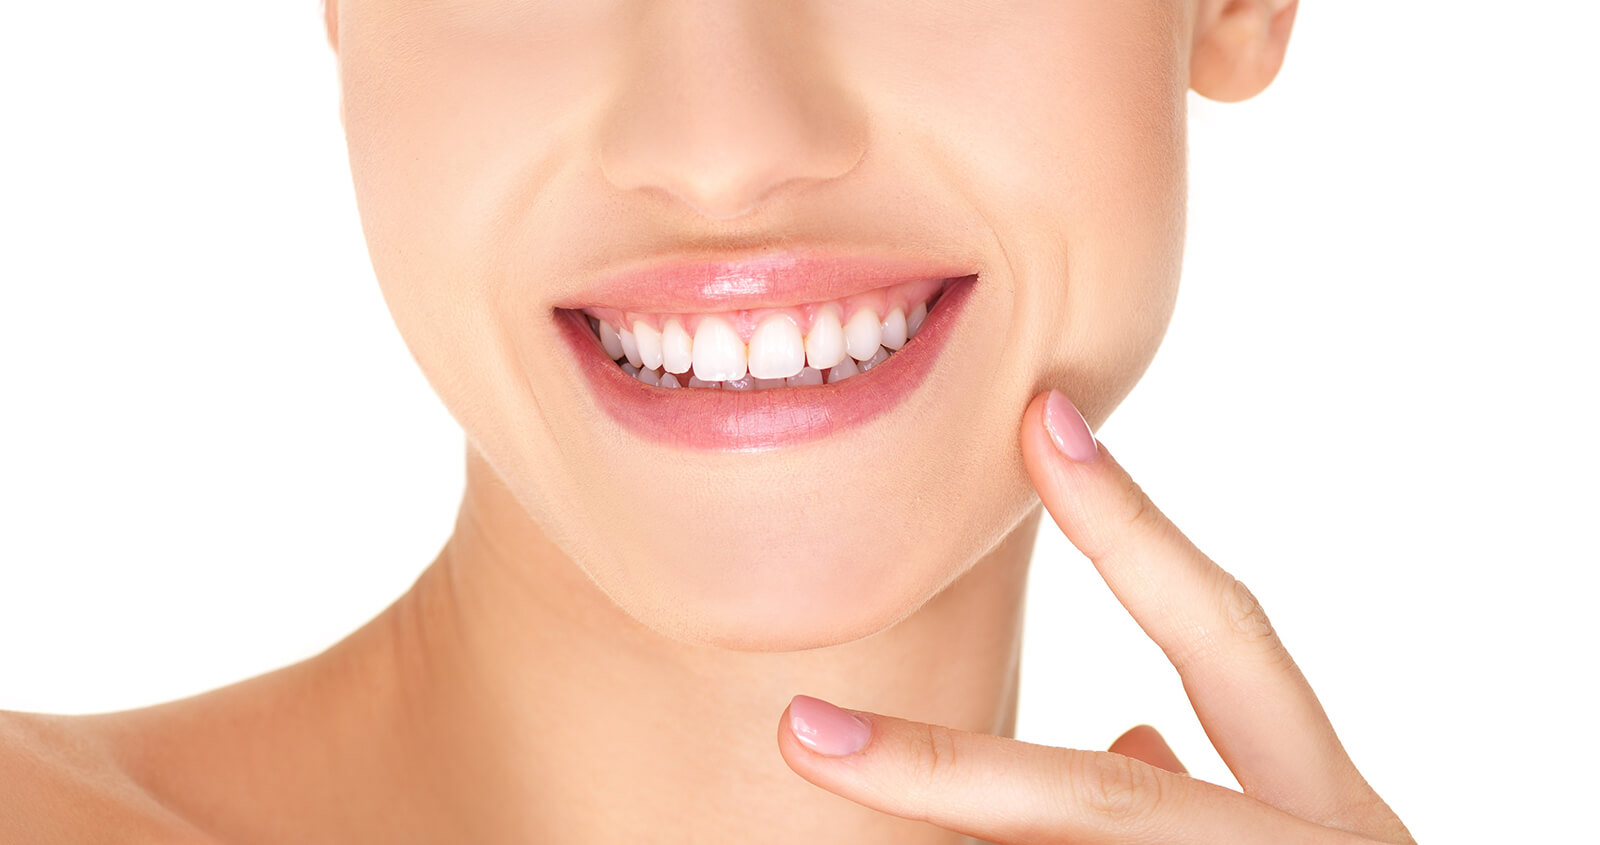 How To Find Holistic Dentistry Services in Overland Park Area